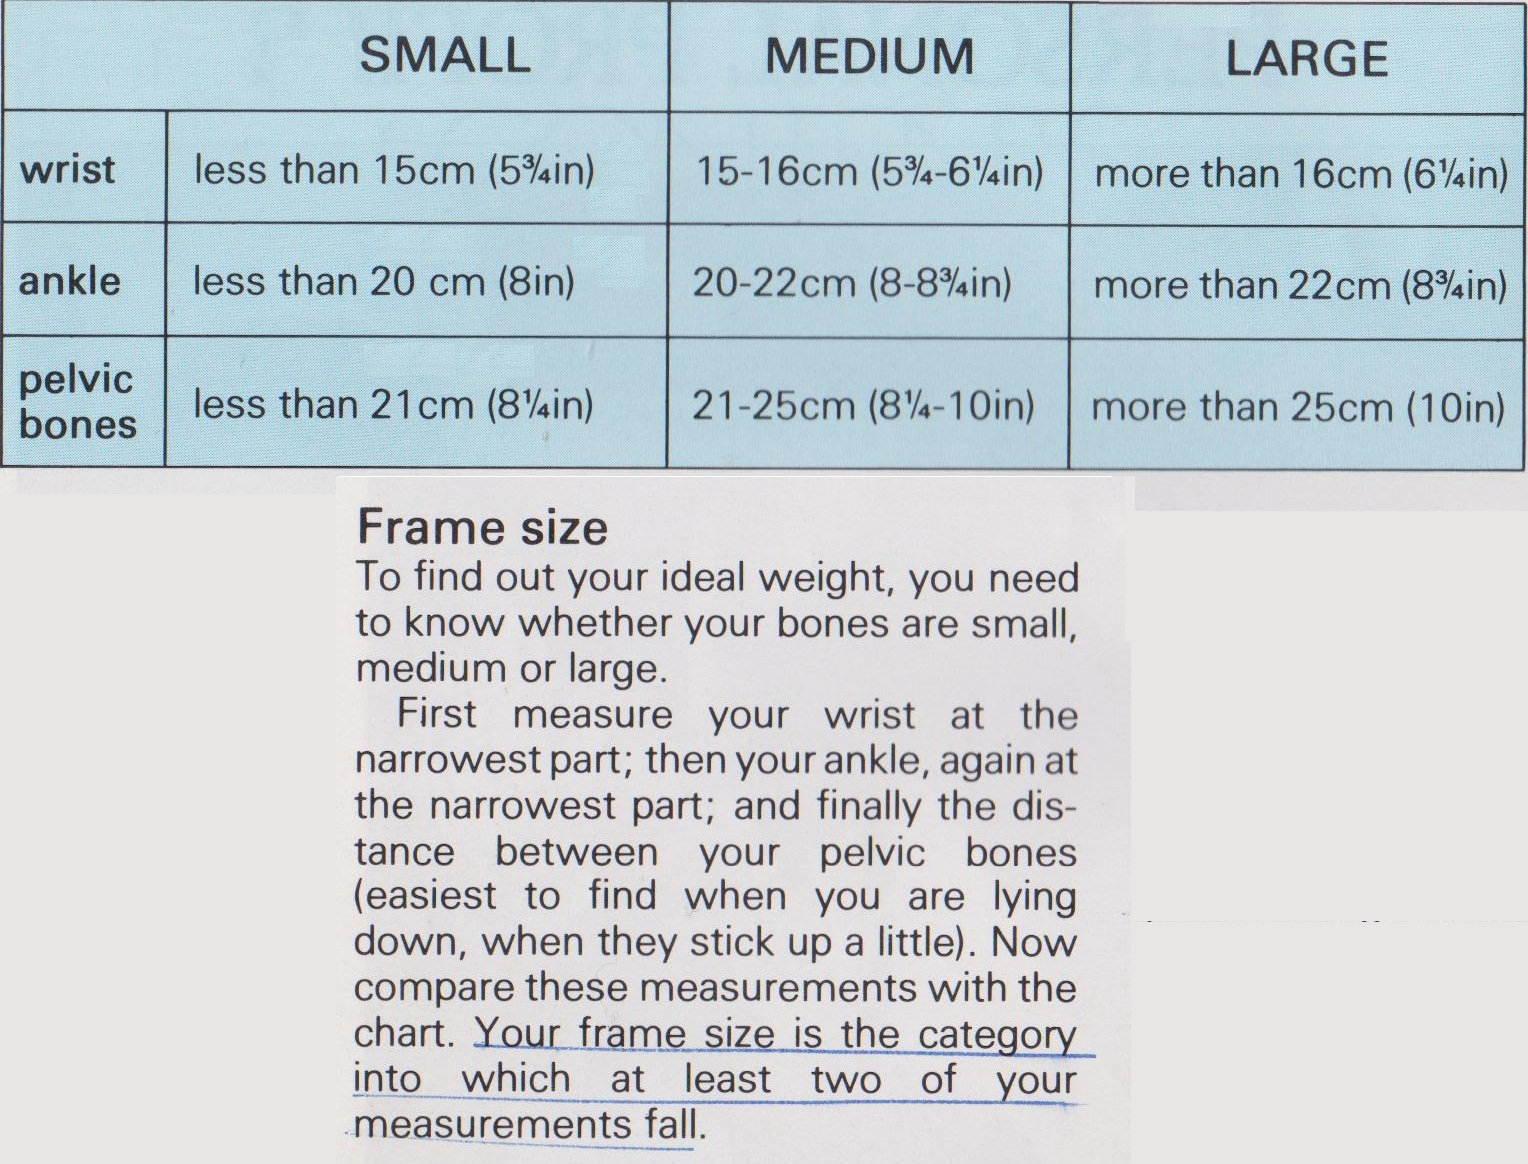 body frame size - Mersn.proforum.co